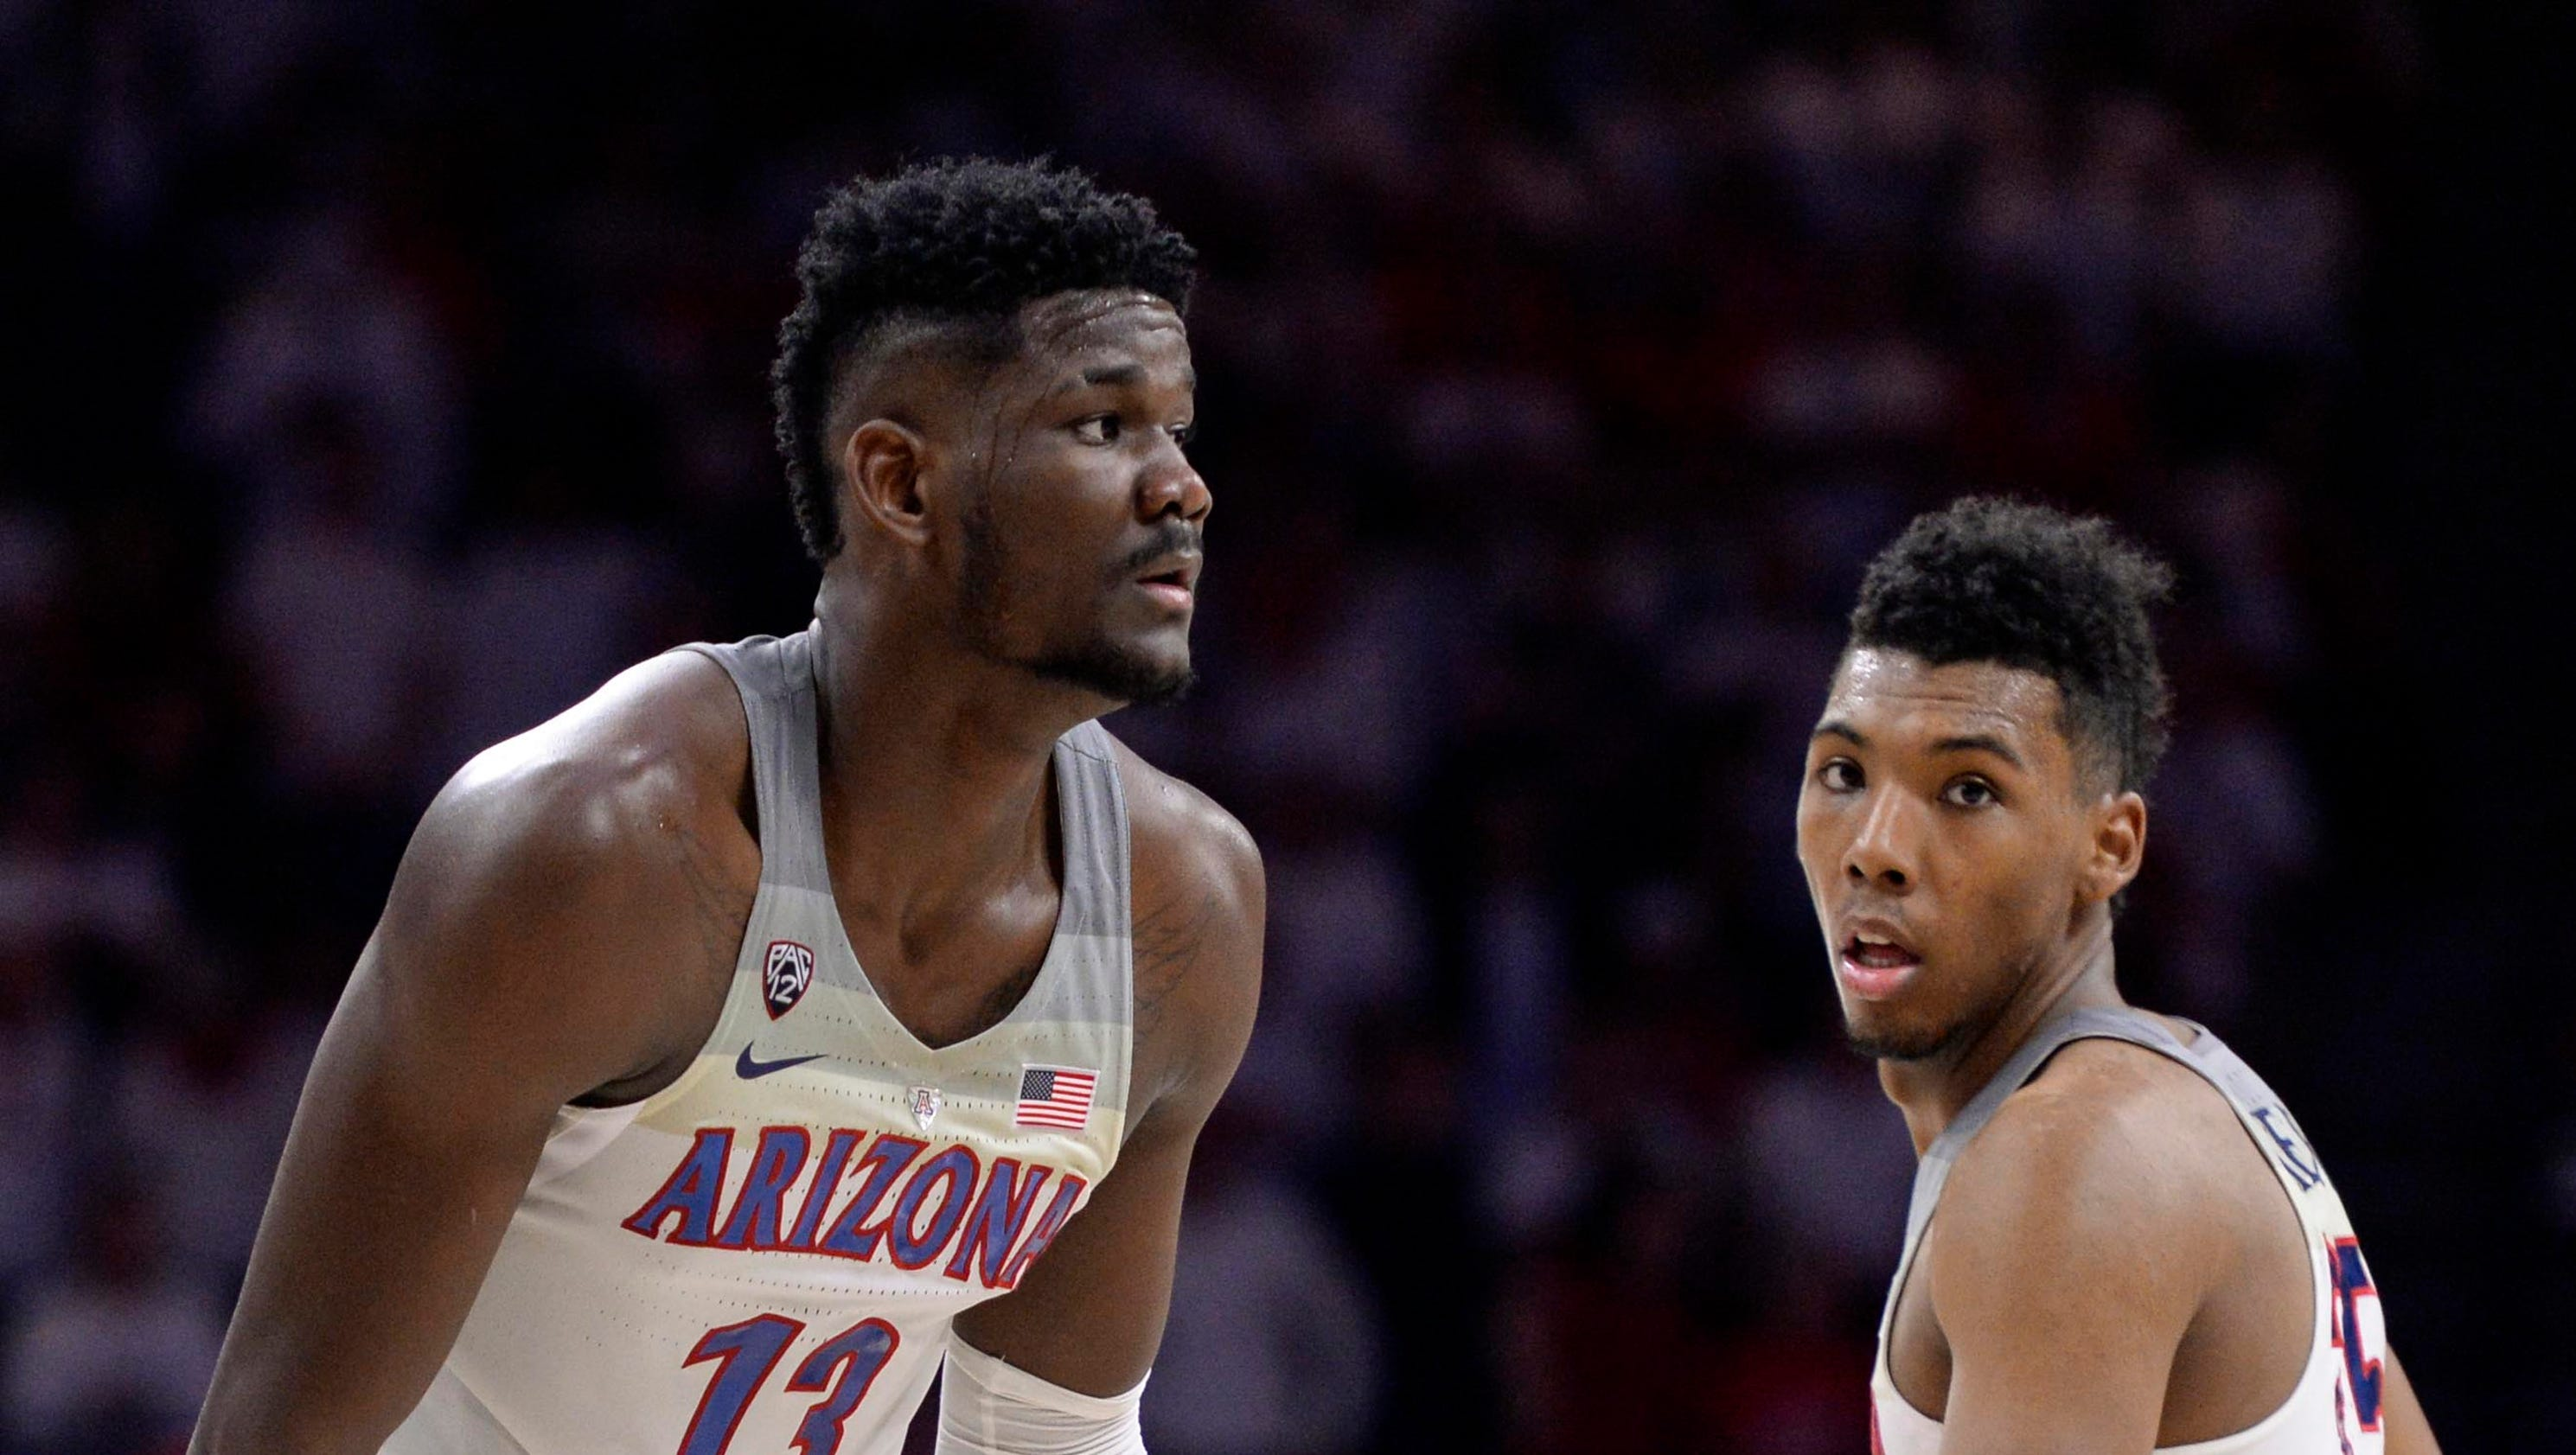 636567987648894535-deandre-ayton-nba-draft